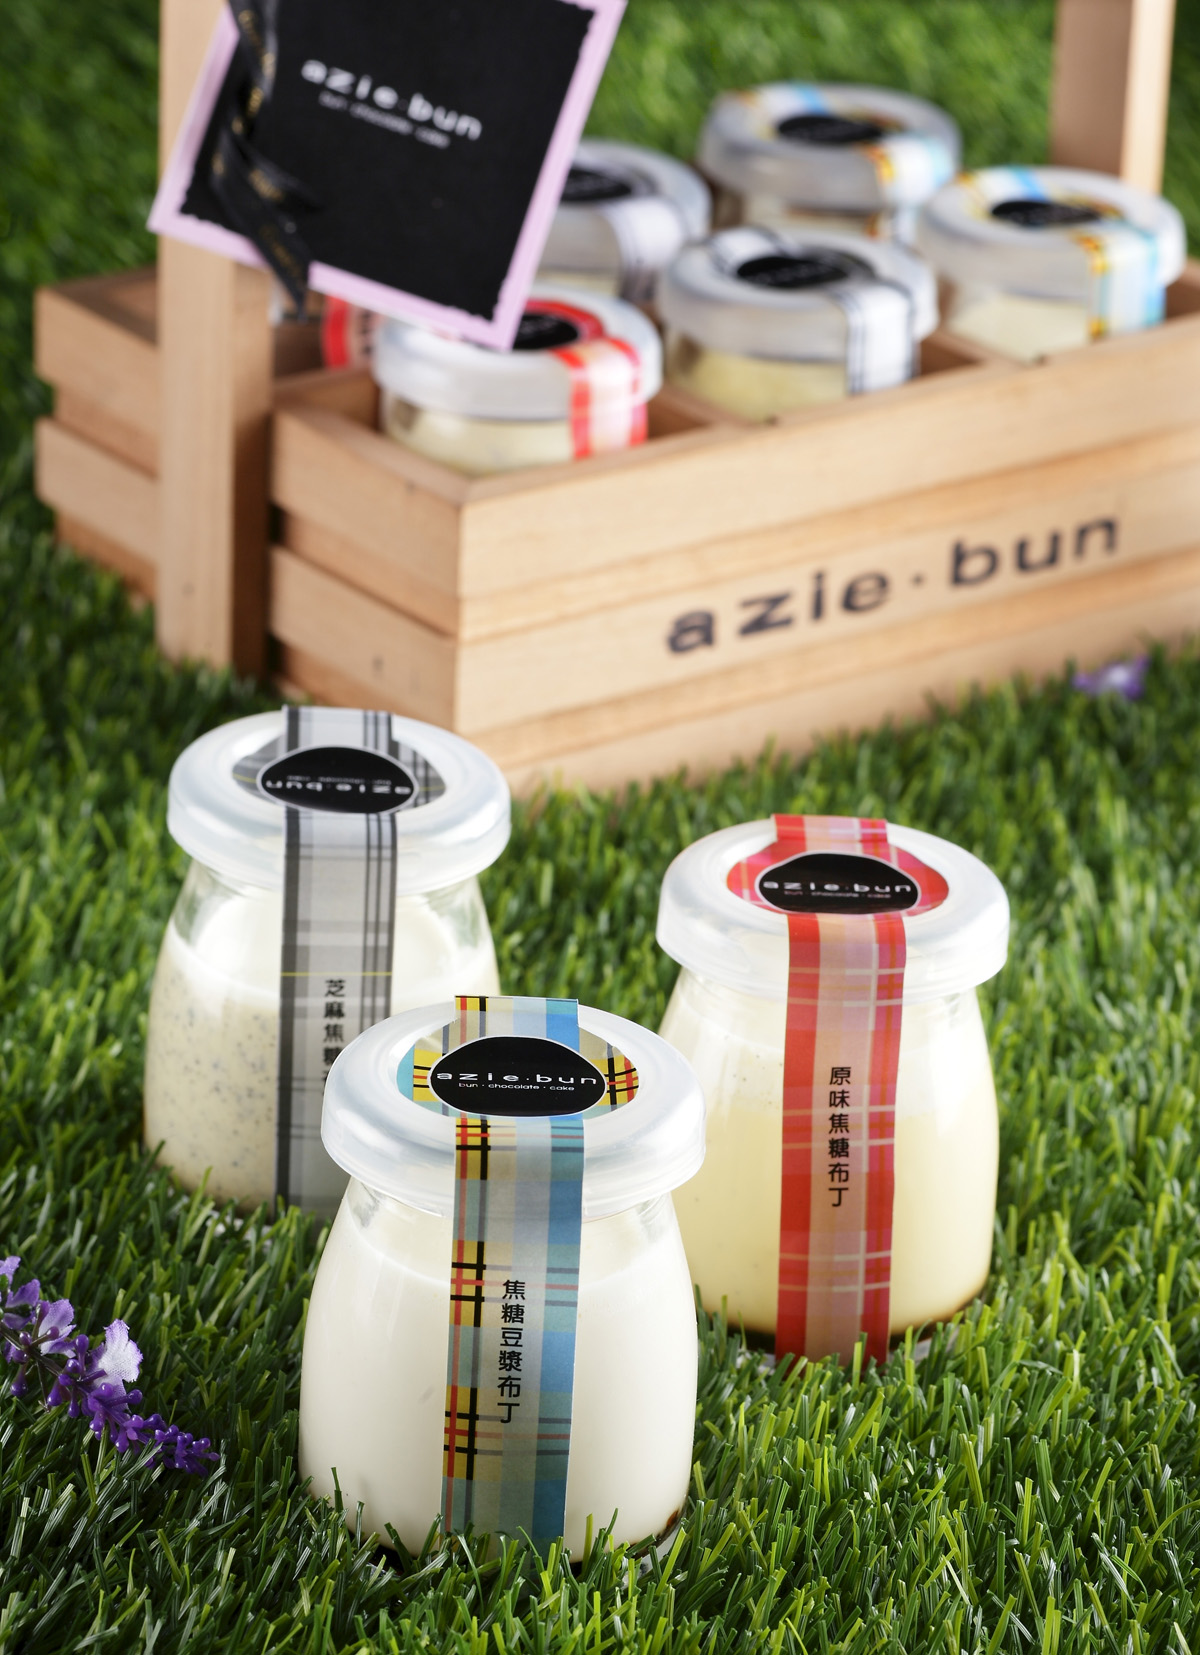 The Regent Taipei's azie bun presents three kinds of handmade pudding au lait for you to enjoy!